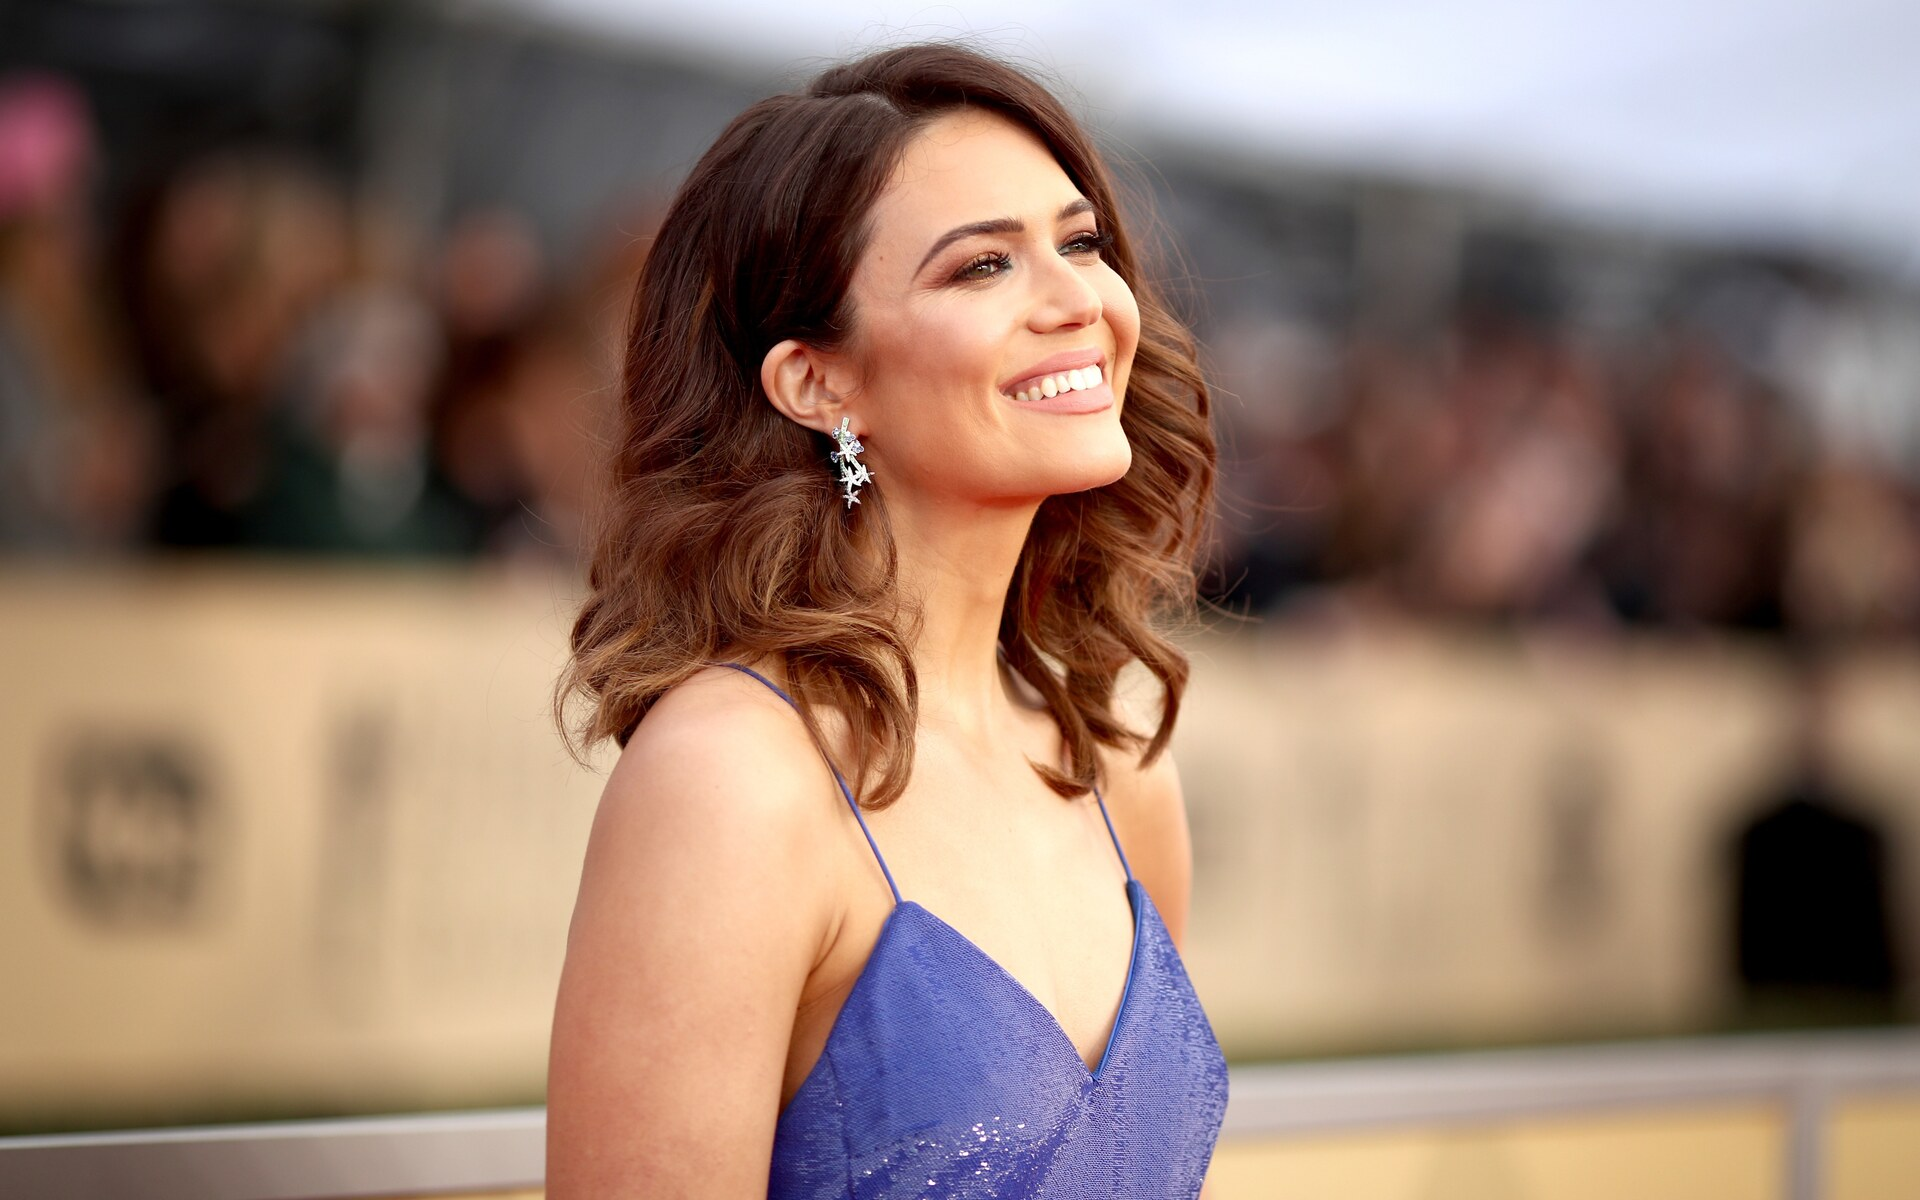 1920x1200 mandy moore 2018 1080p resolution hd 4k wallpapers, images